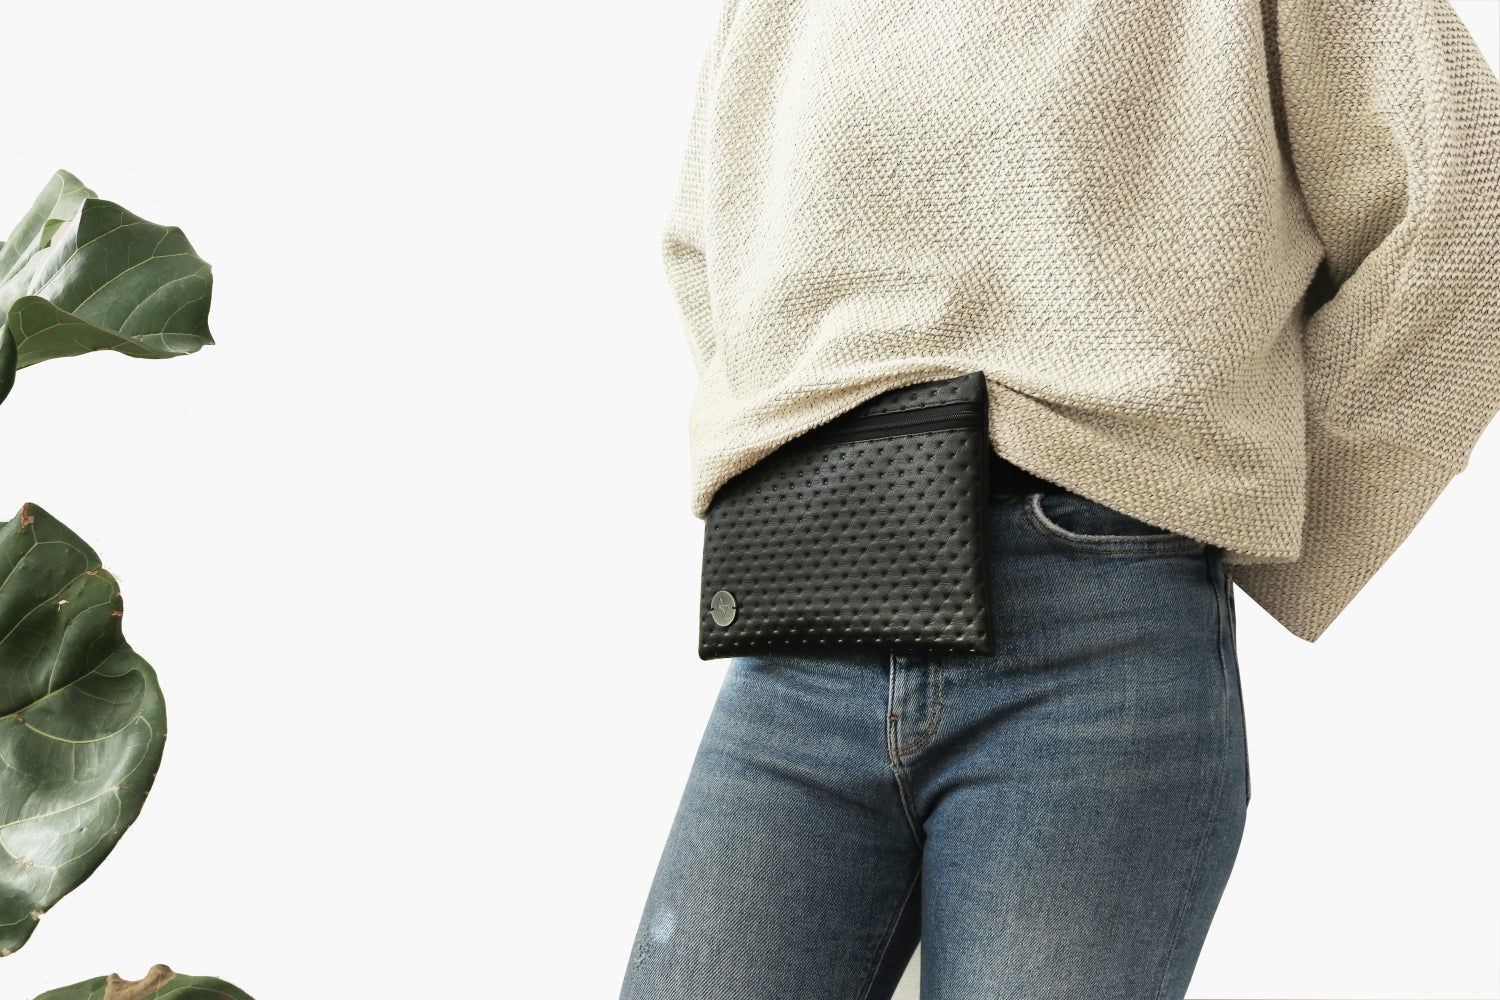 Image of AZ Belt Bag